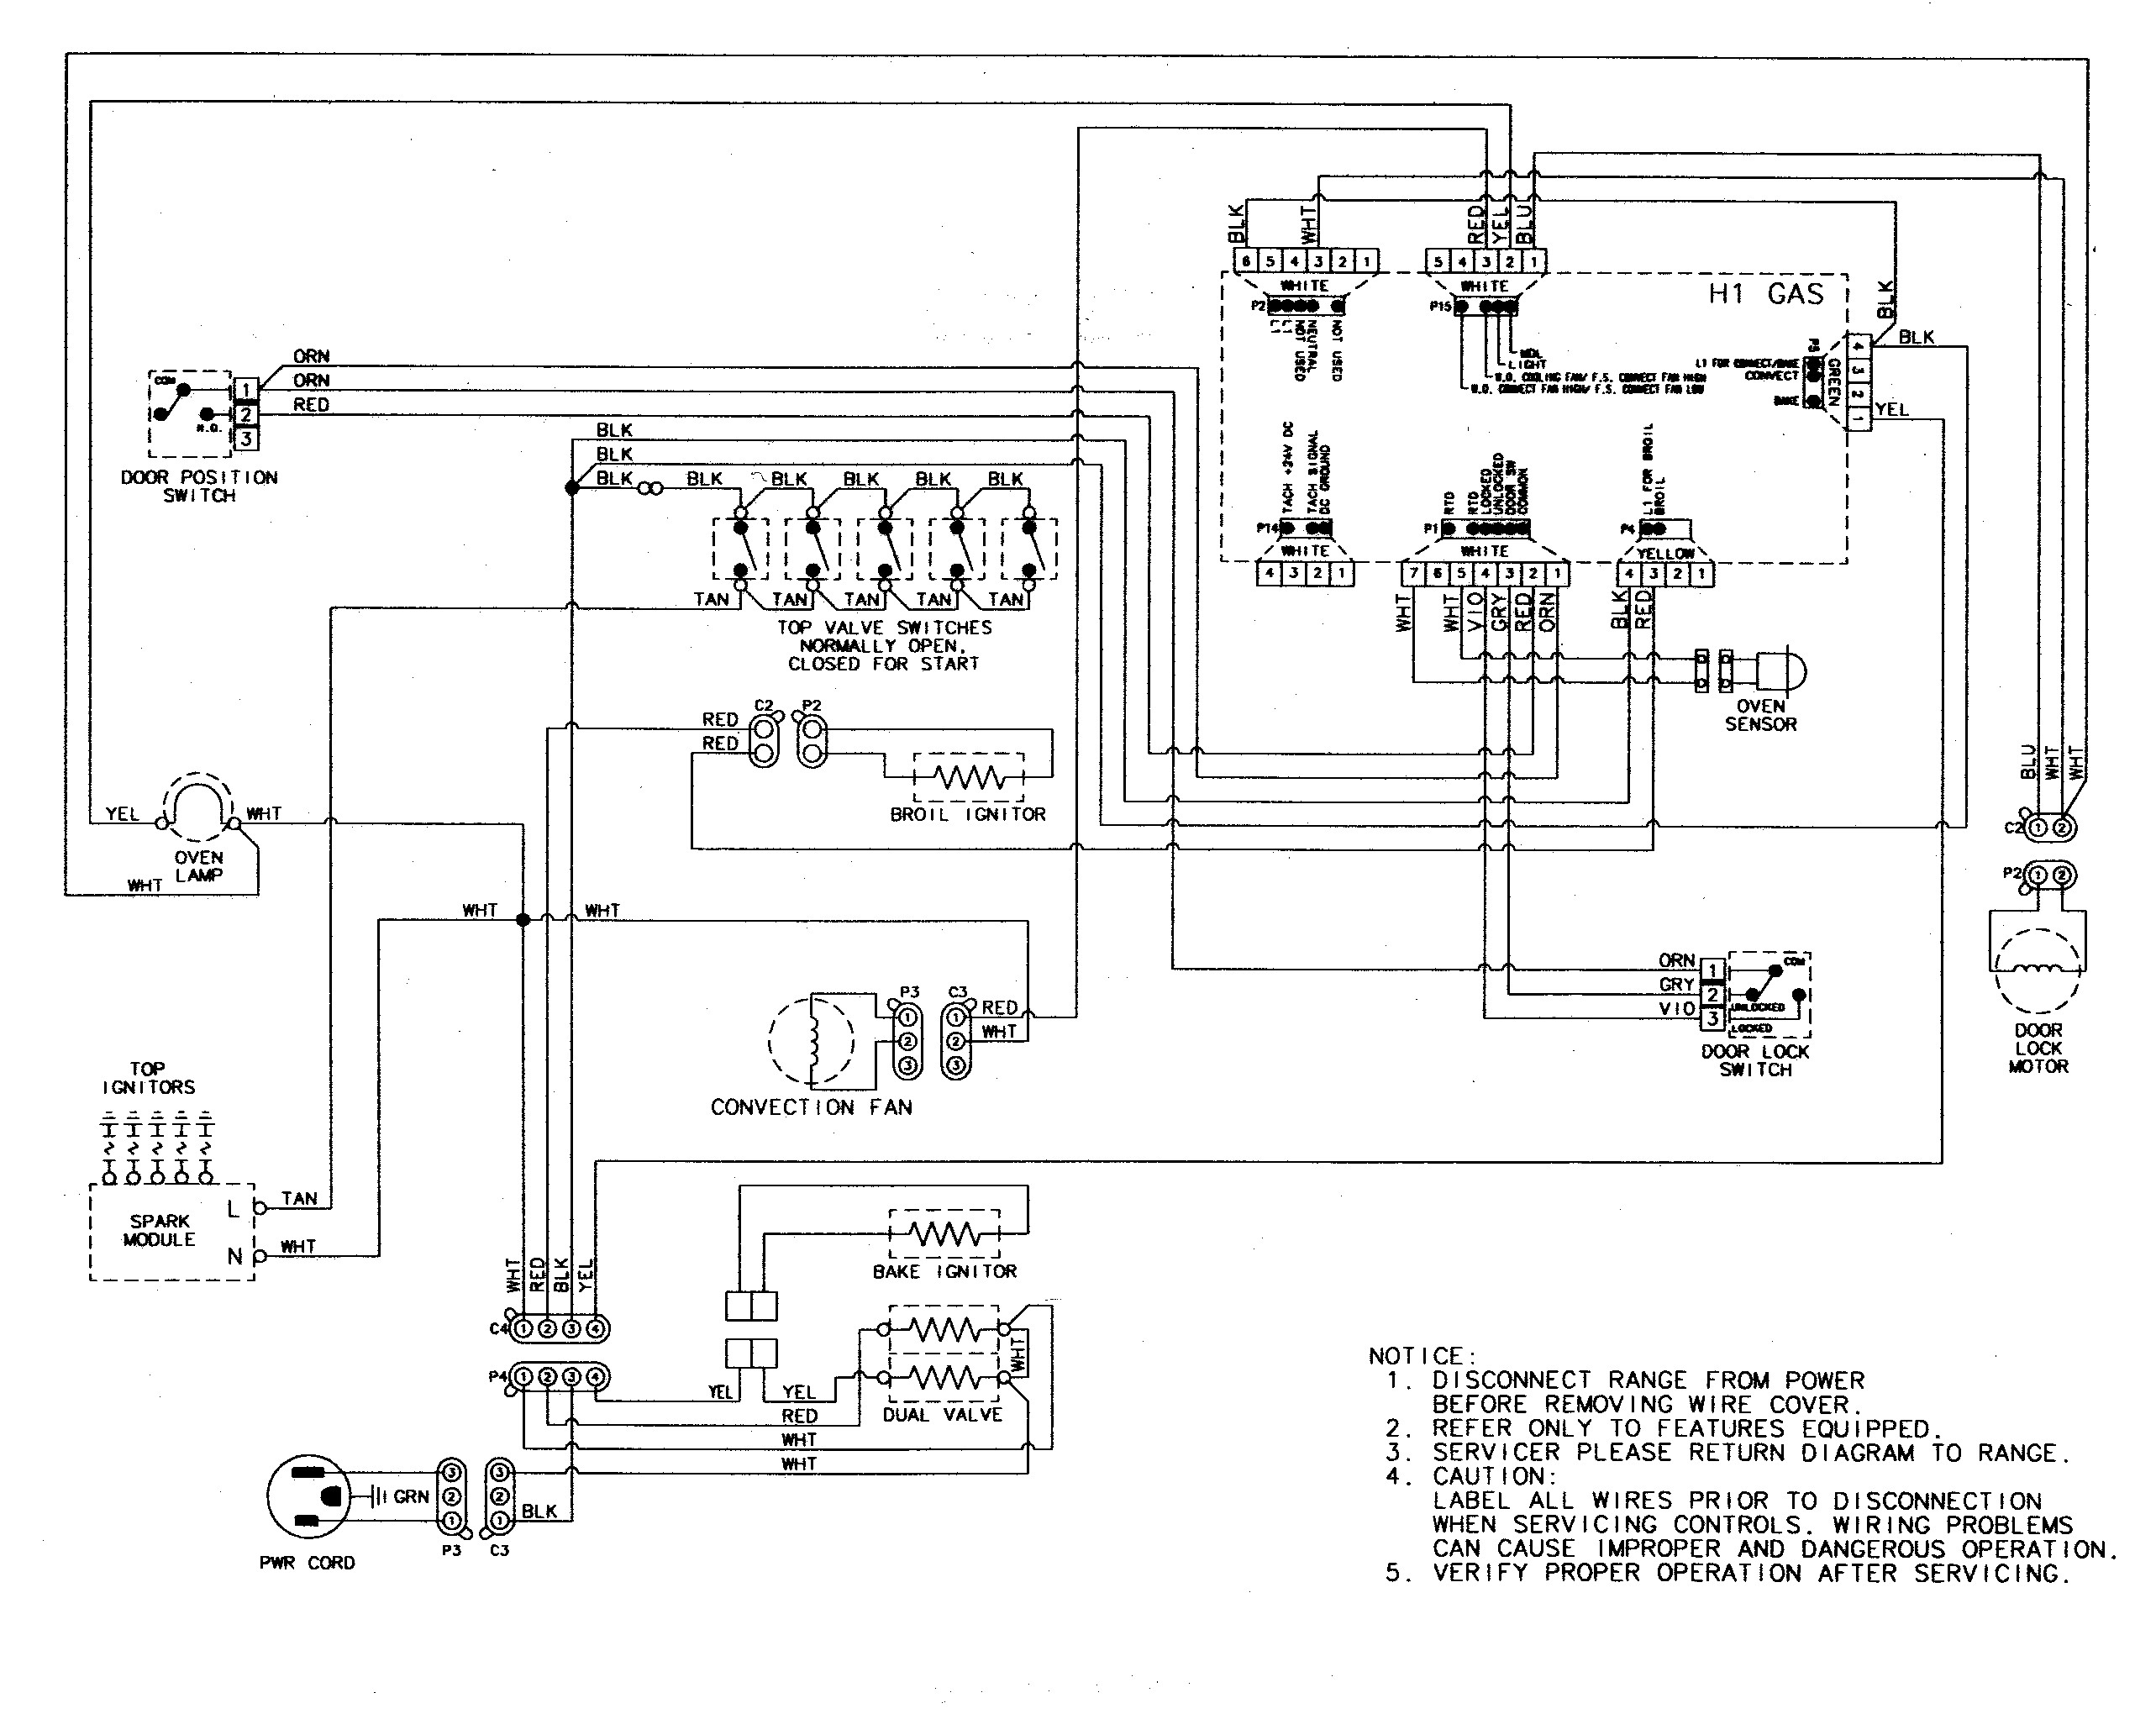 Wiring Diagram For Whirlpool Electric Dryer : Whirlpool electric dryer wiring diagram collection